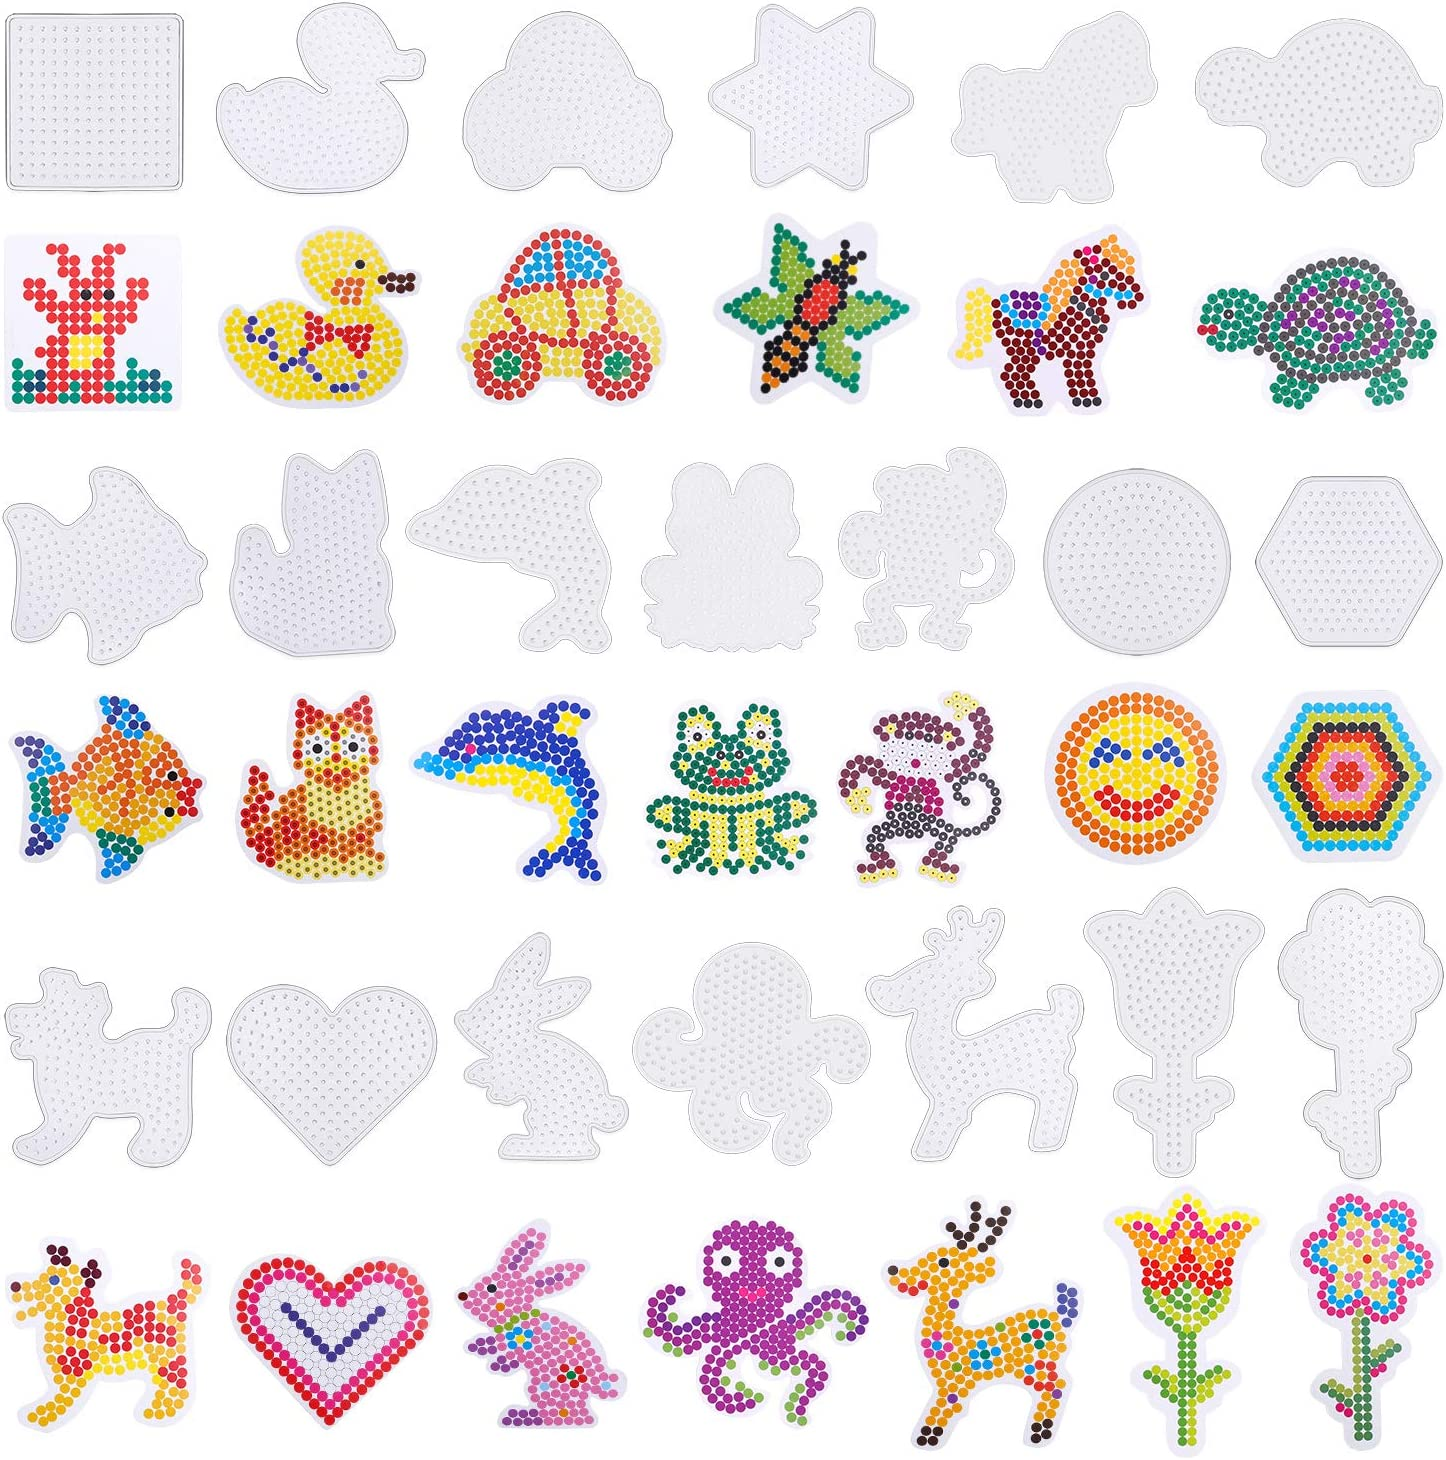 Coopay 20 Pieces Fuse Beads Pegboards Clear Plastic Template Beads Boards Different Shapes with 20 Pieces Colorful Cards for Kids Craft Supplies